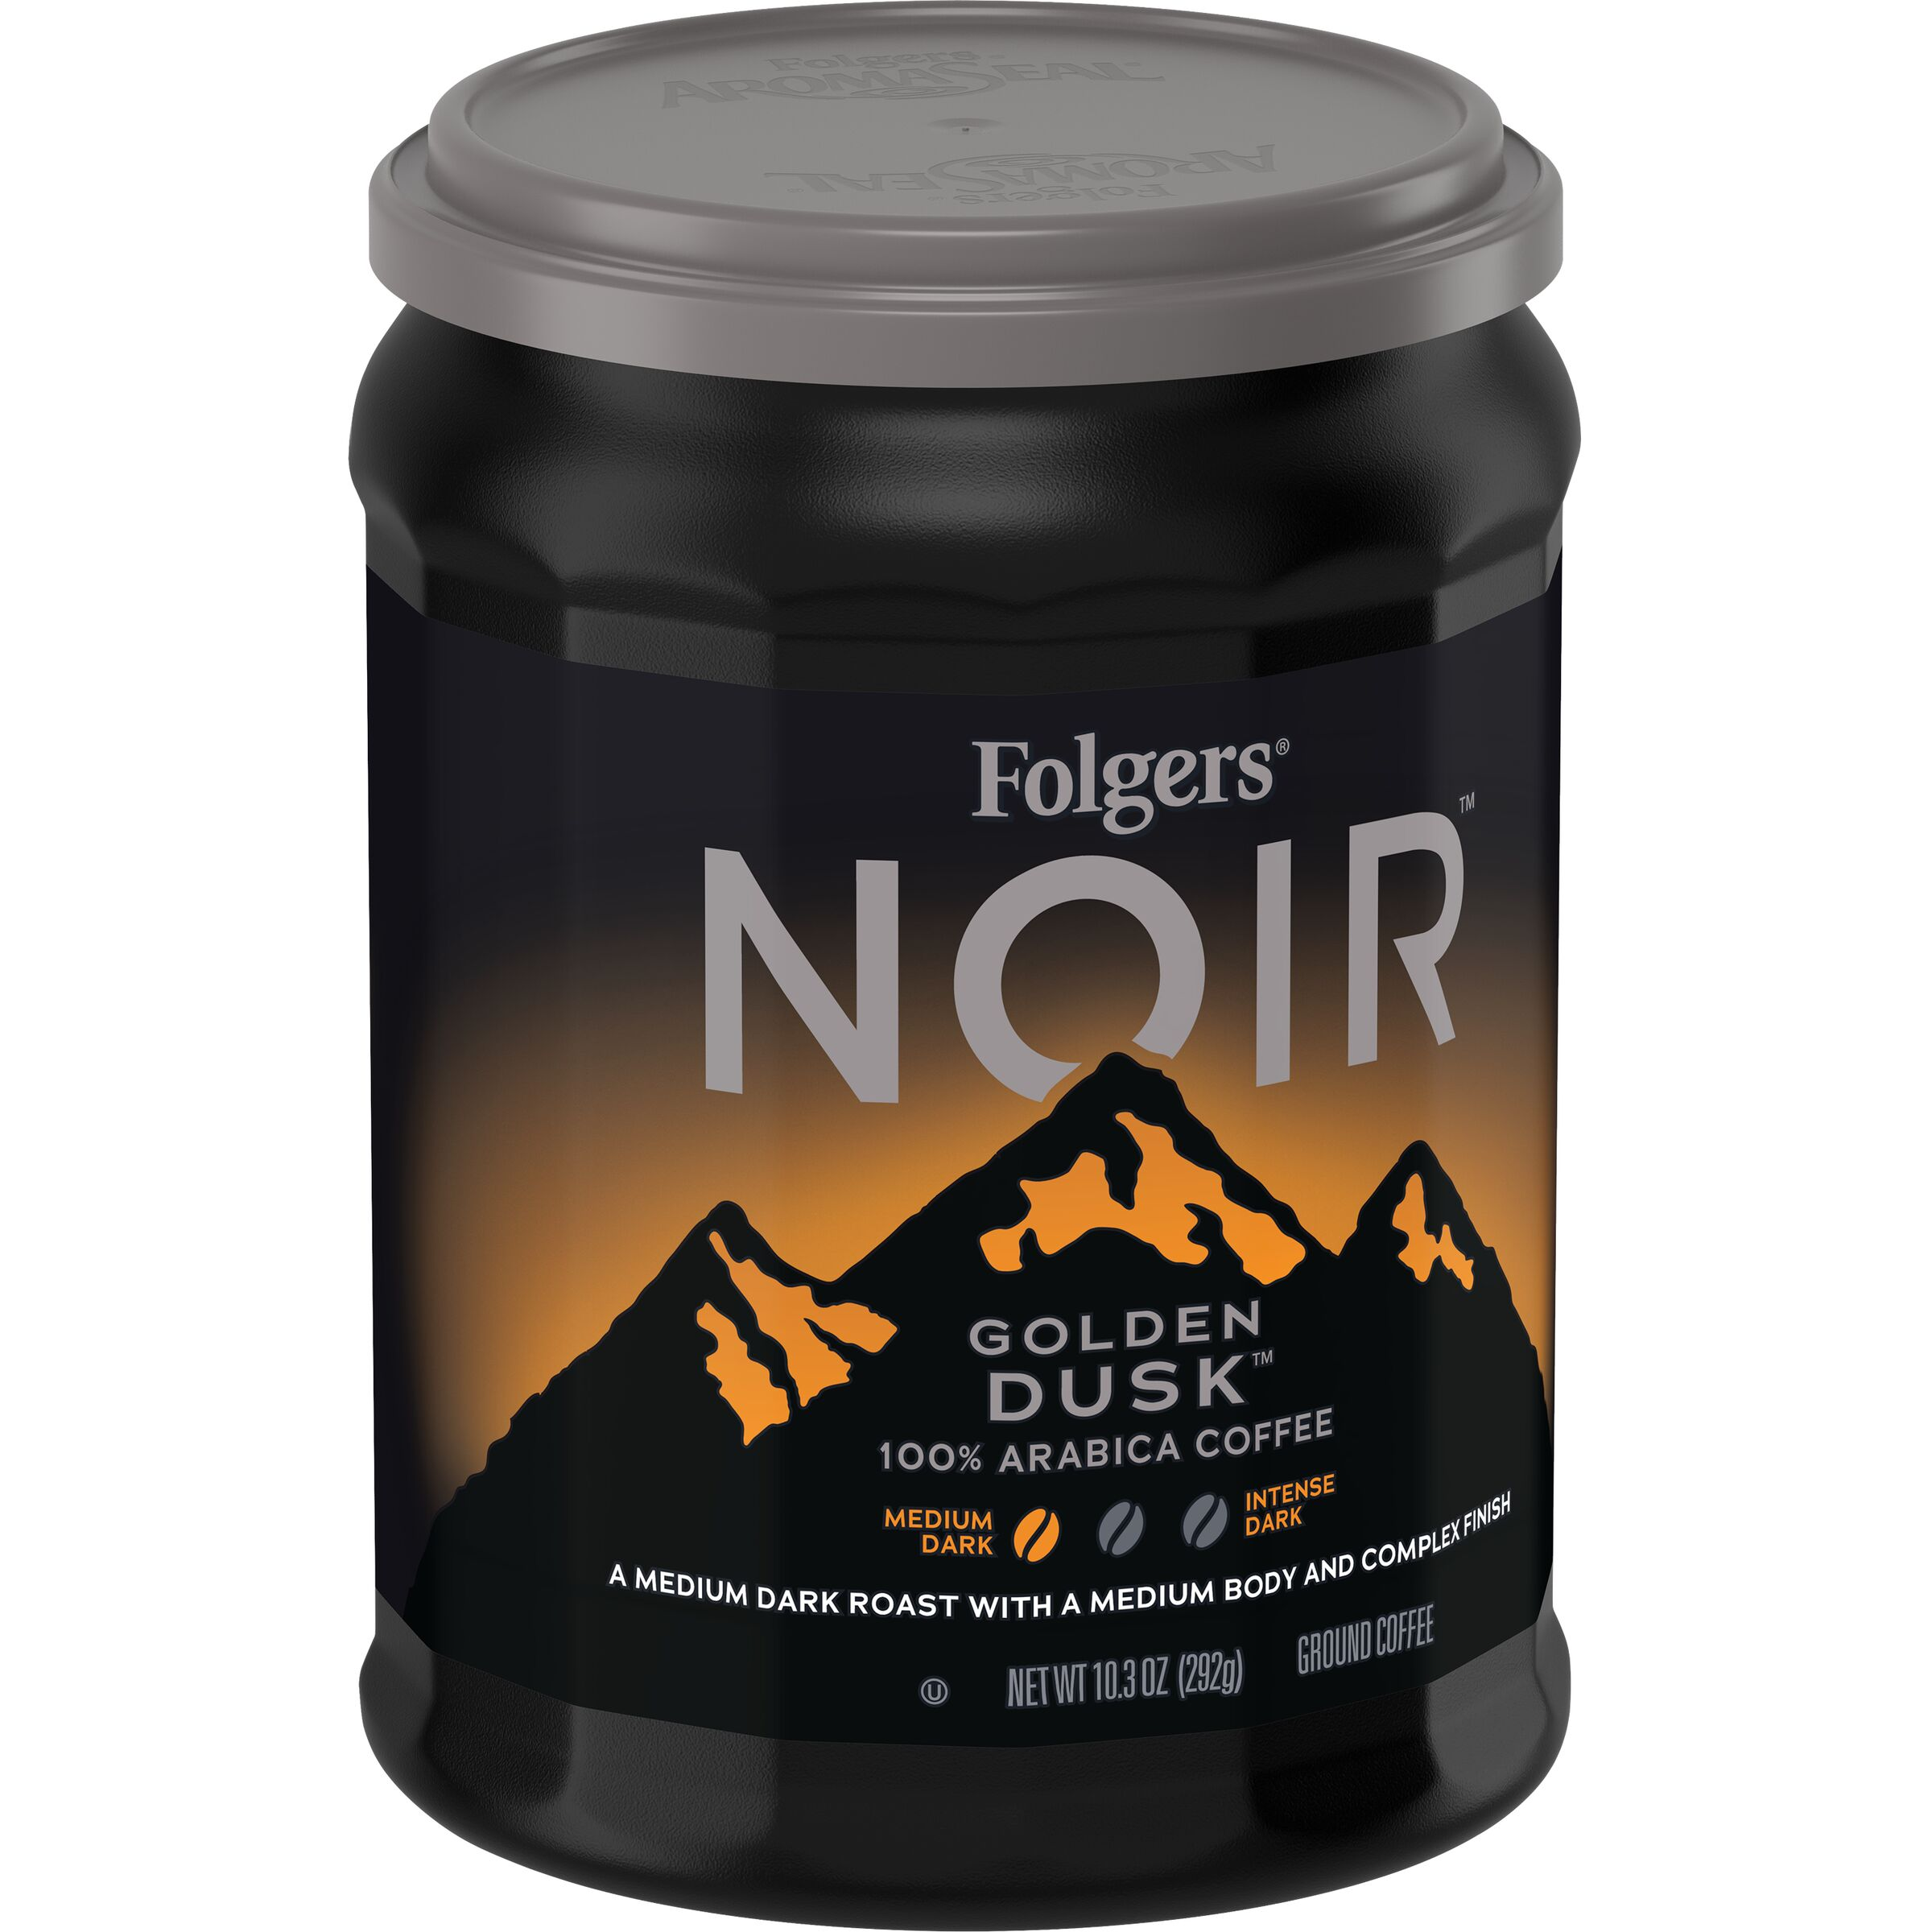 Folgers<sup>®</sup> Noir Golden Dusk™ Ground Coffee